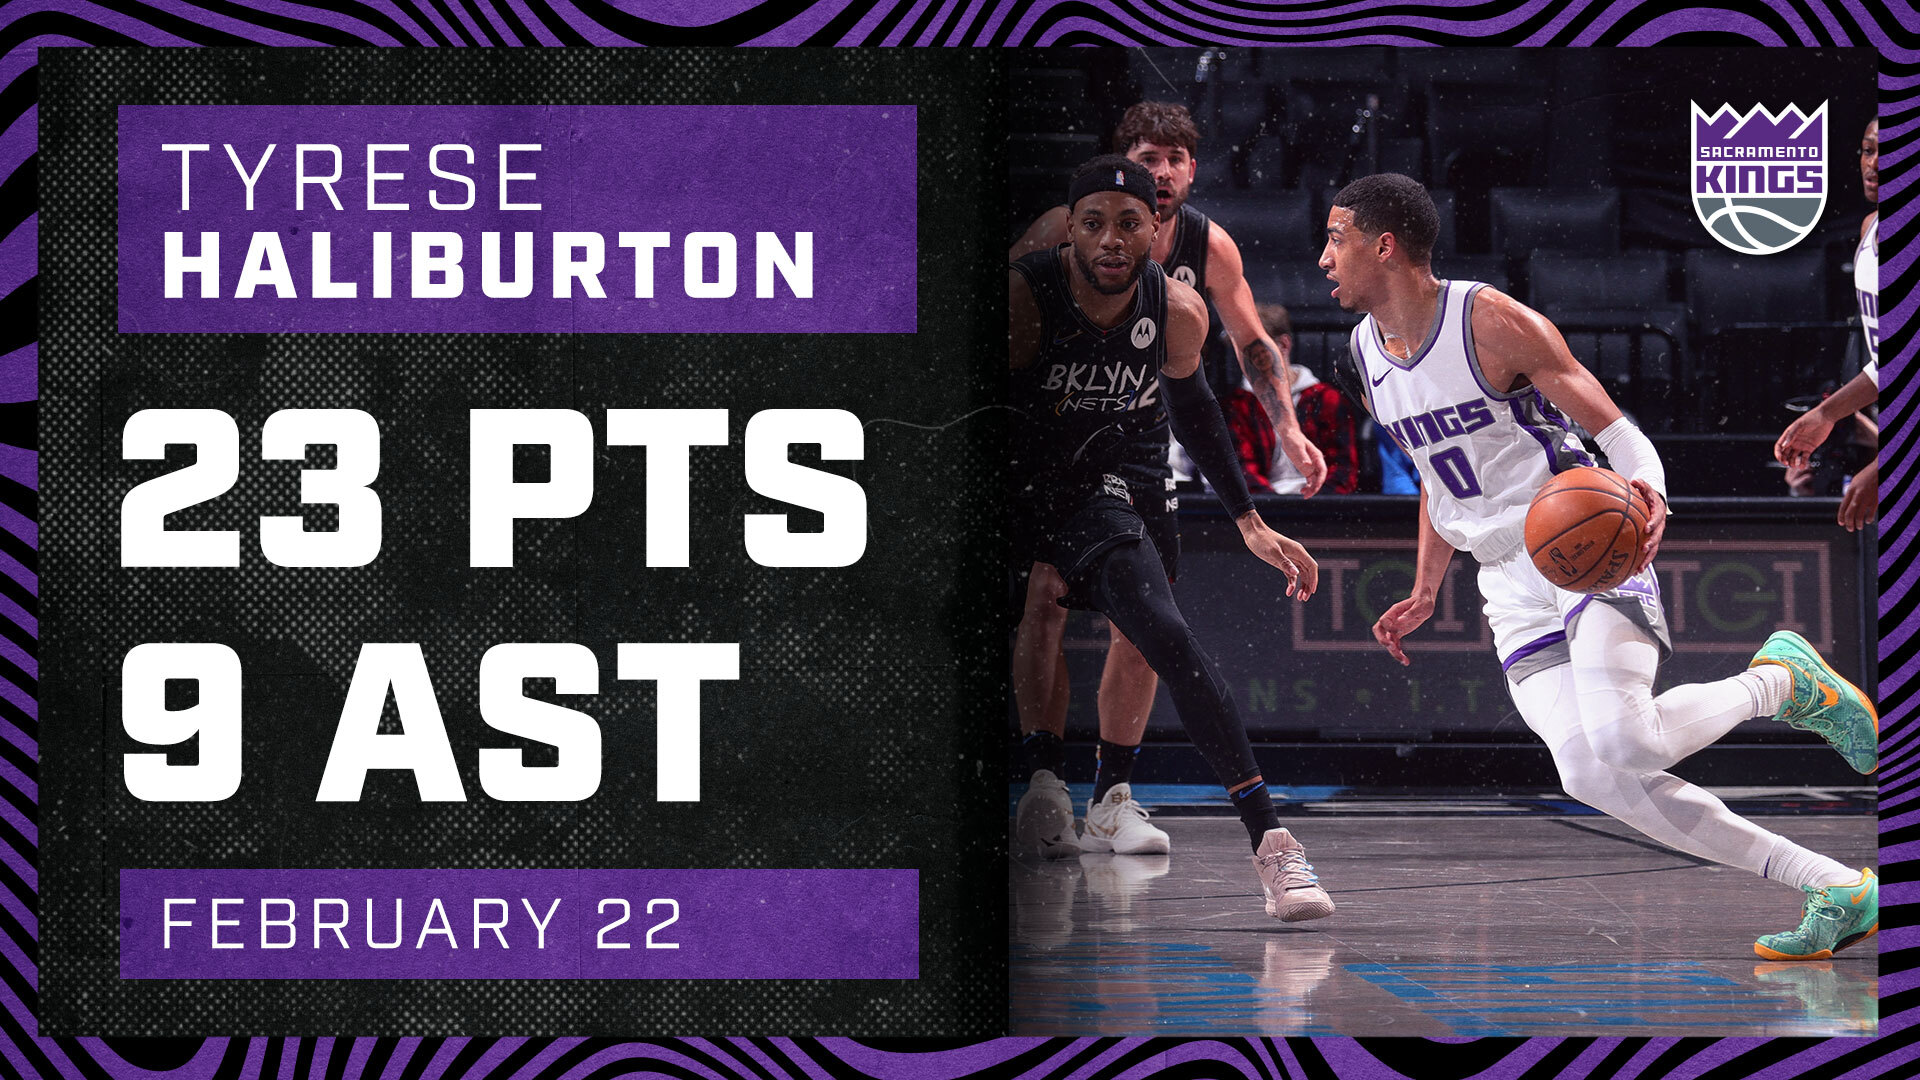 Haliburton Ties Career-High Mark Against Nets | Kings vs Nets 2.23.21